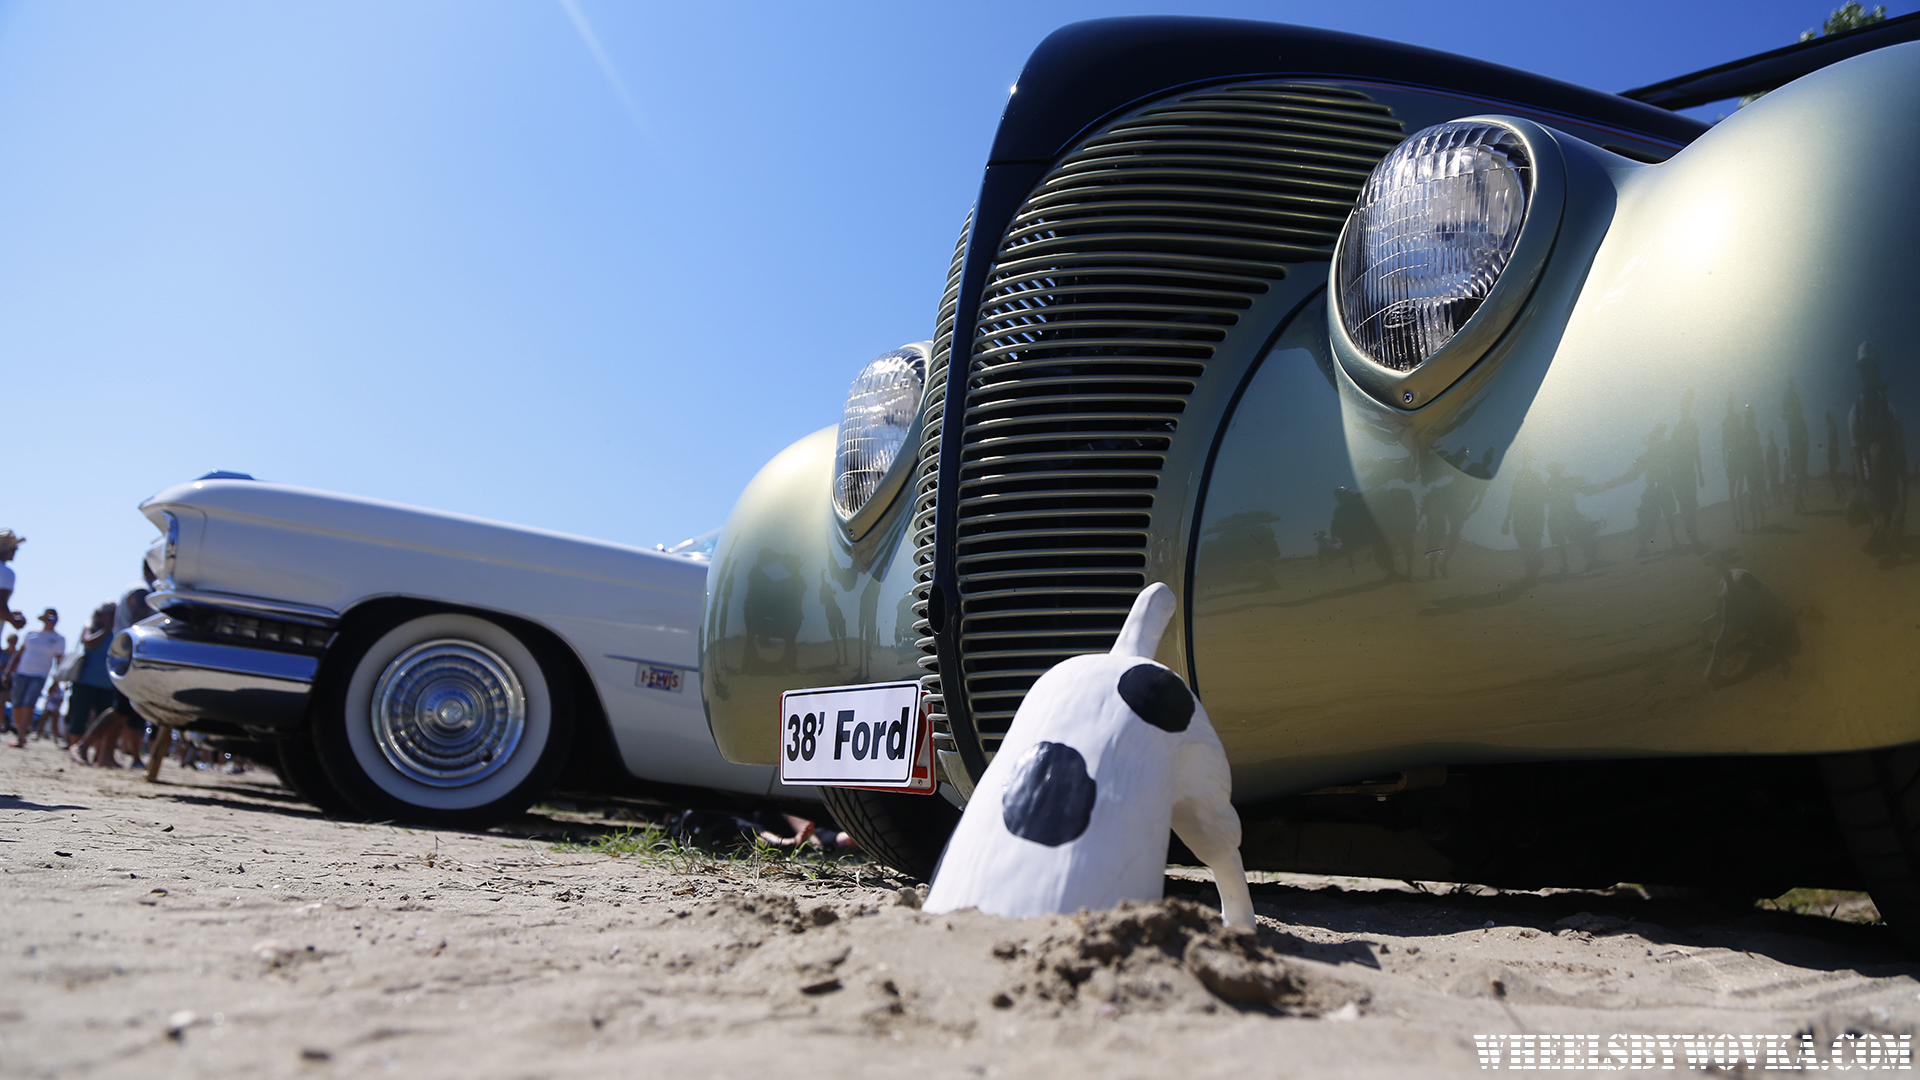 roll-flat-venice-hot-rod-beach-race-trog-by-wheelsbywovka-62